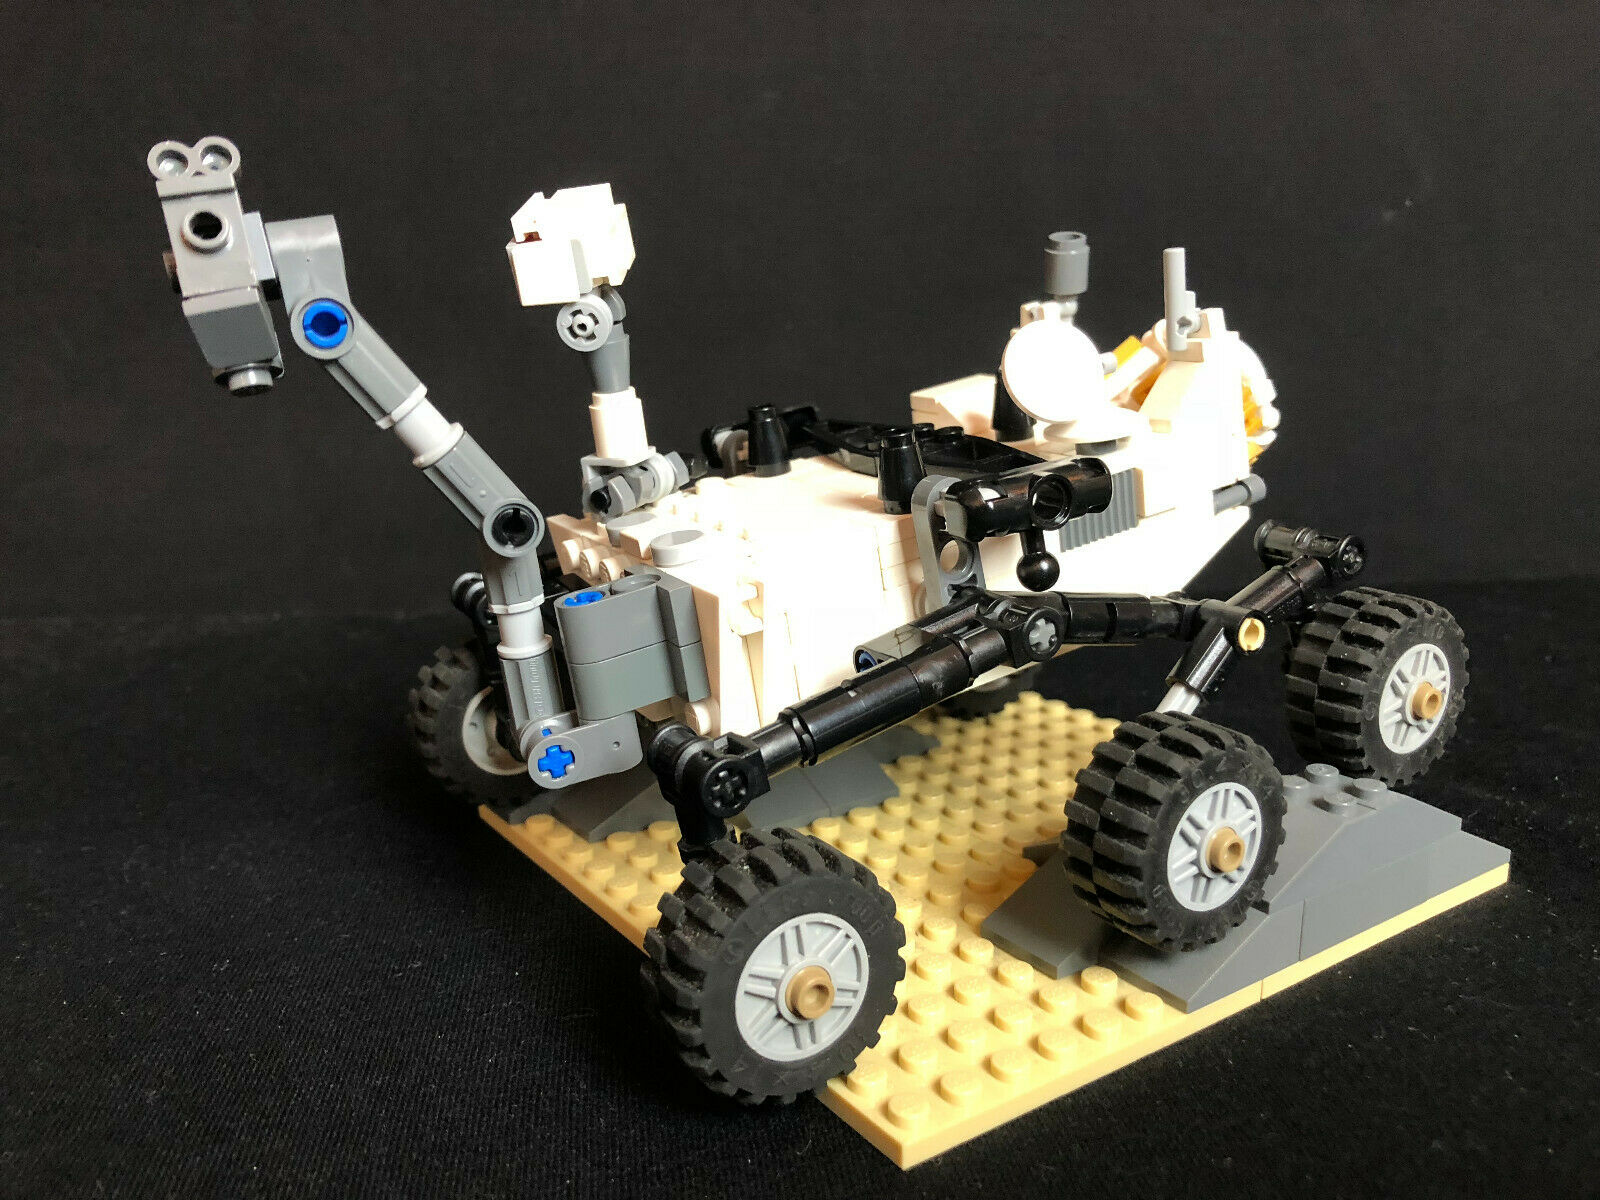 Lego 21104 CUUSOO Ideas Mars Science Laboratory Curiosity Rover complete